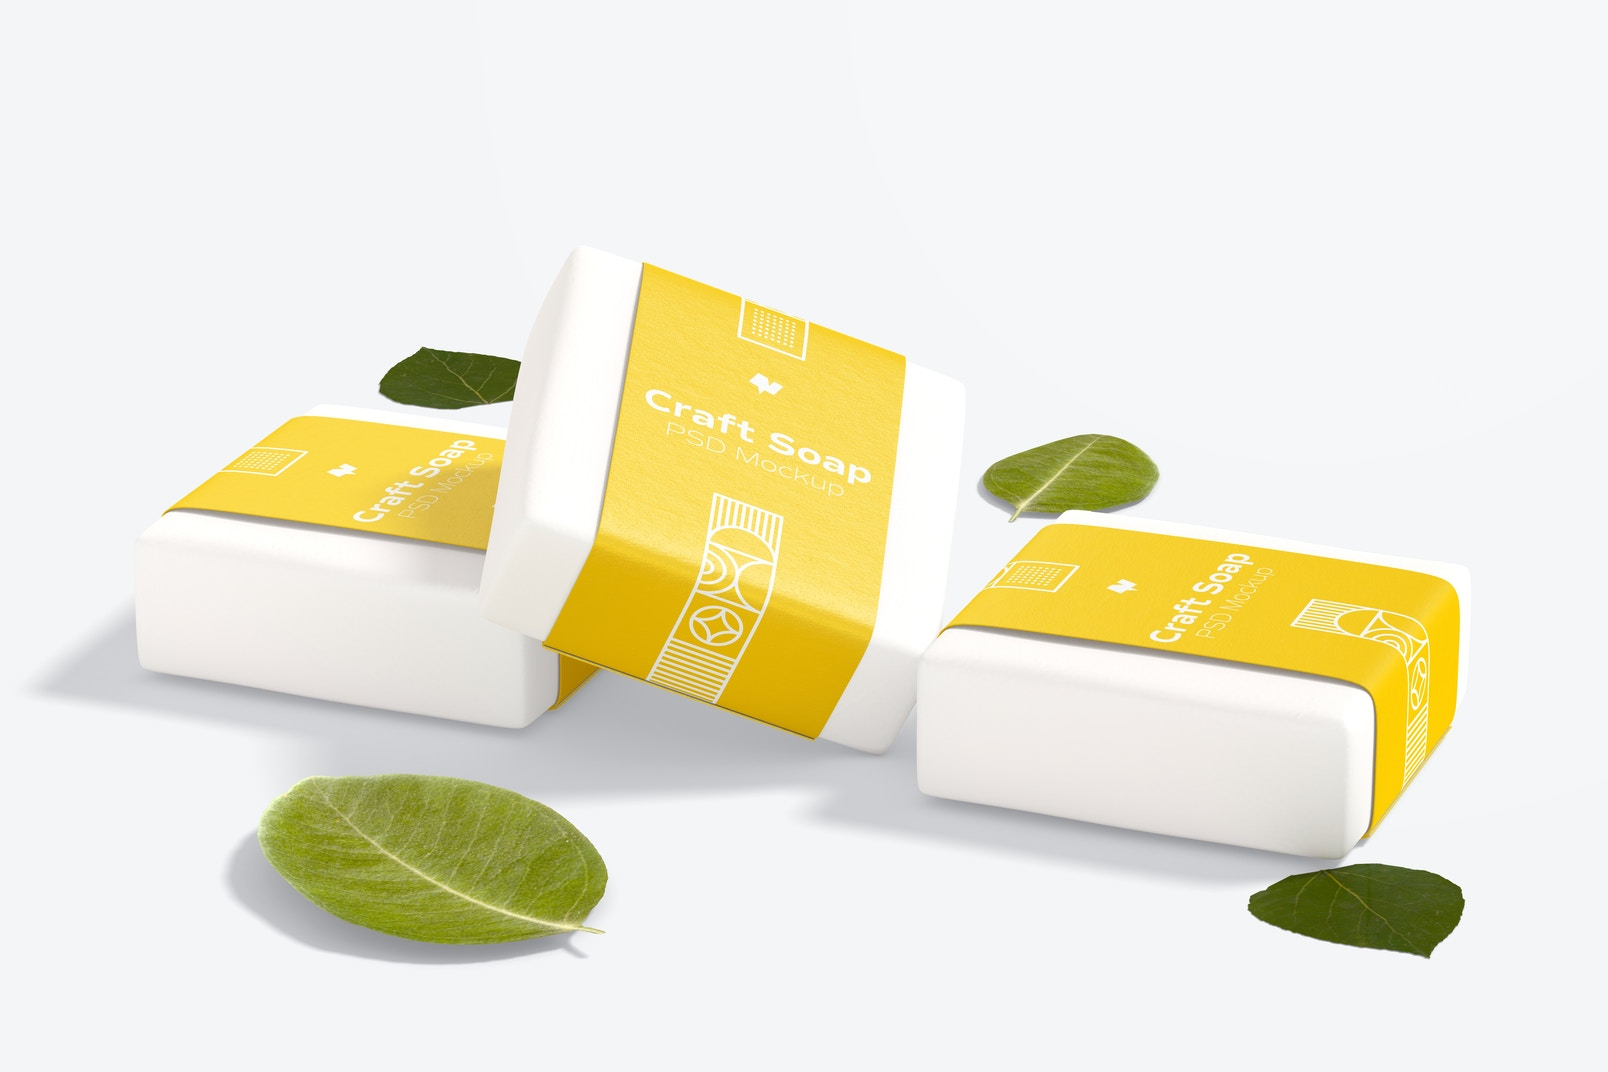 Craft Soaps with Label Mockup, Perspective View